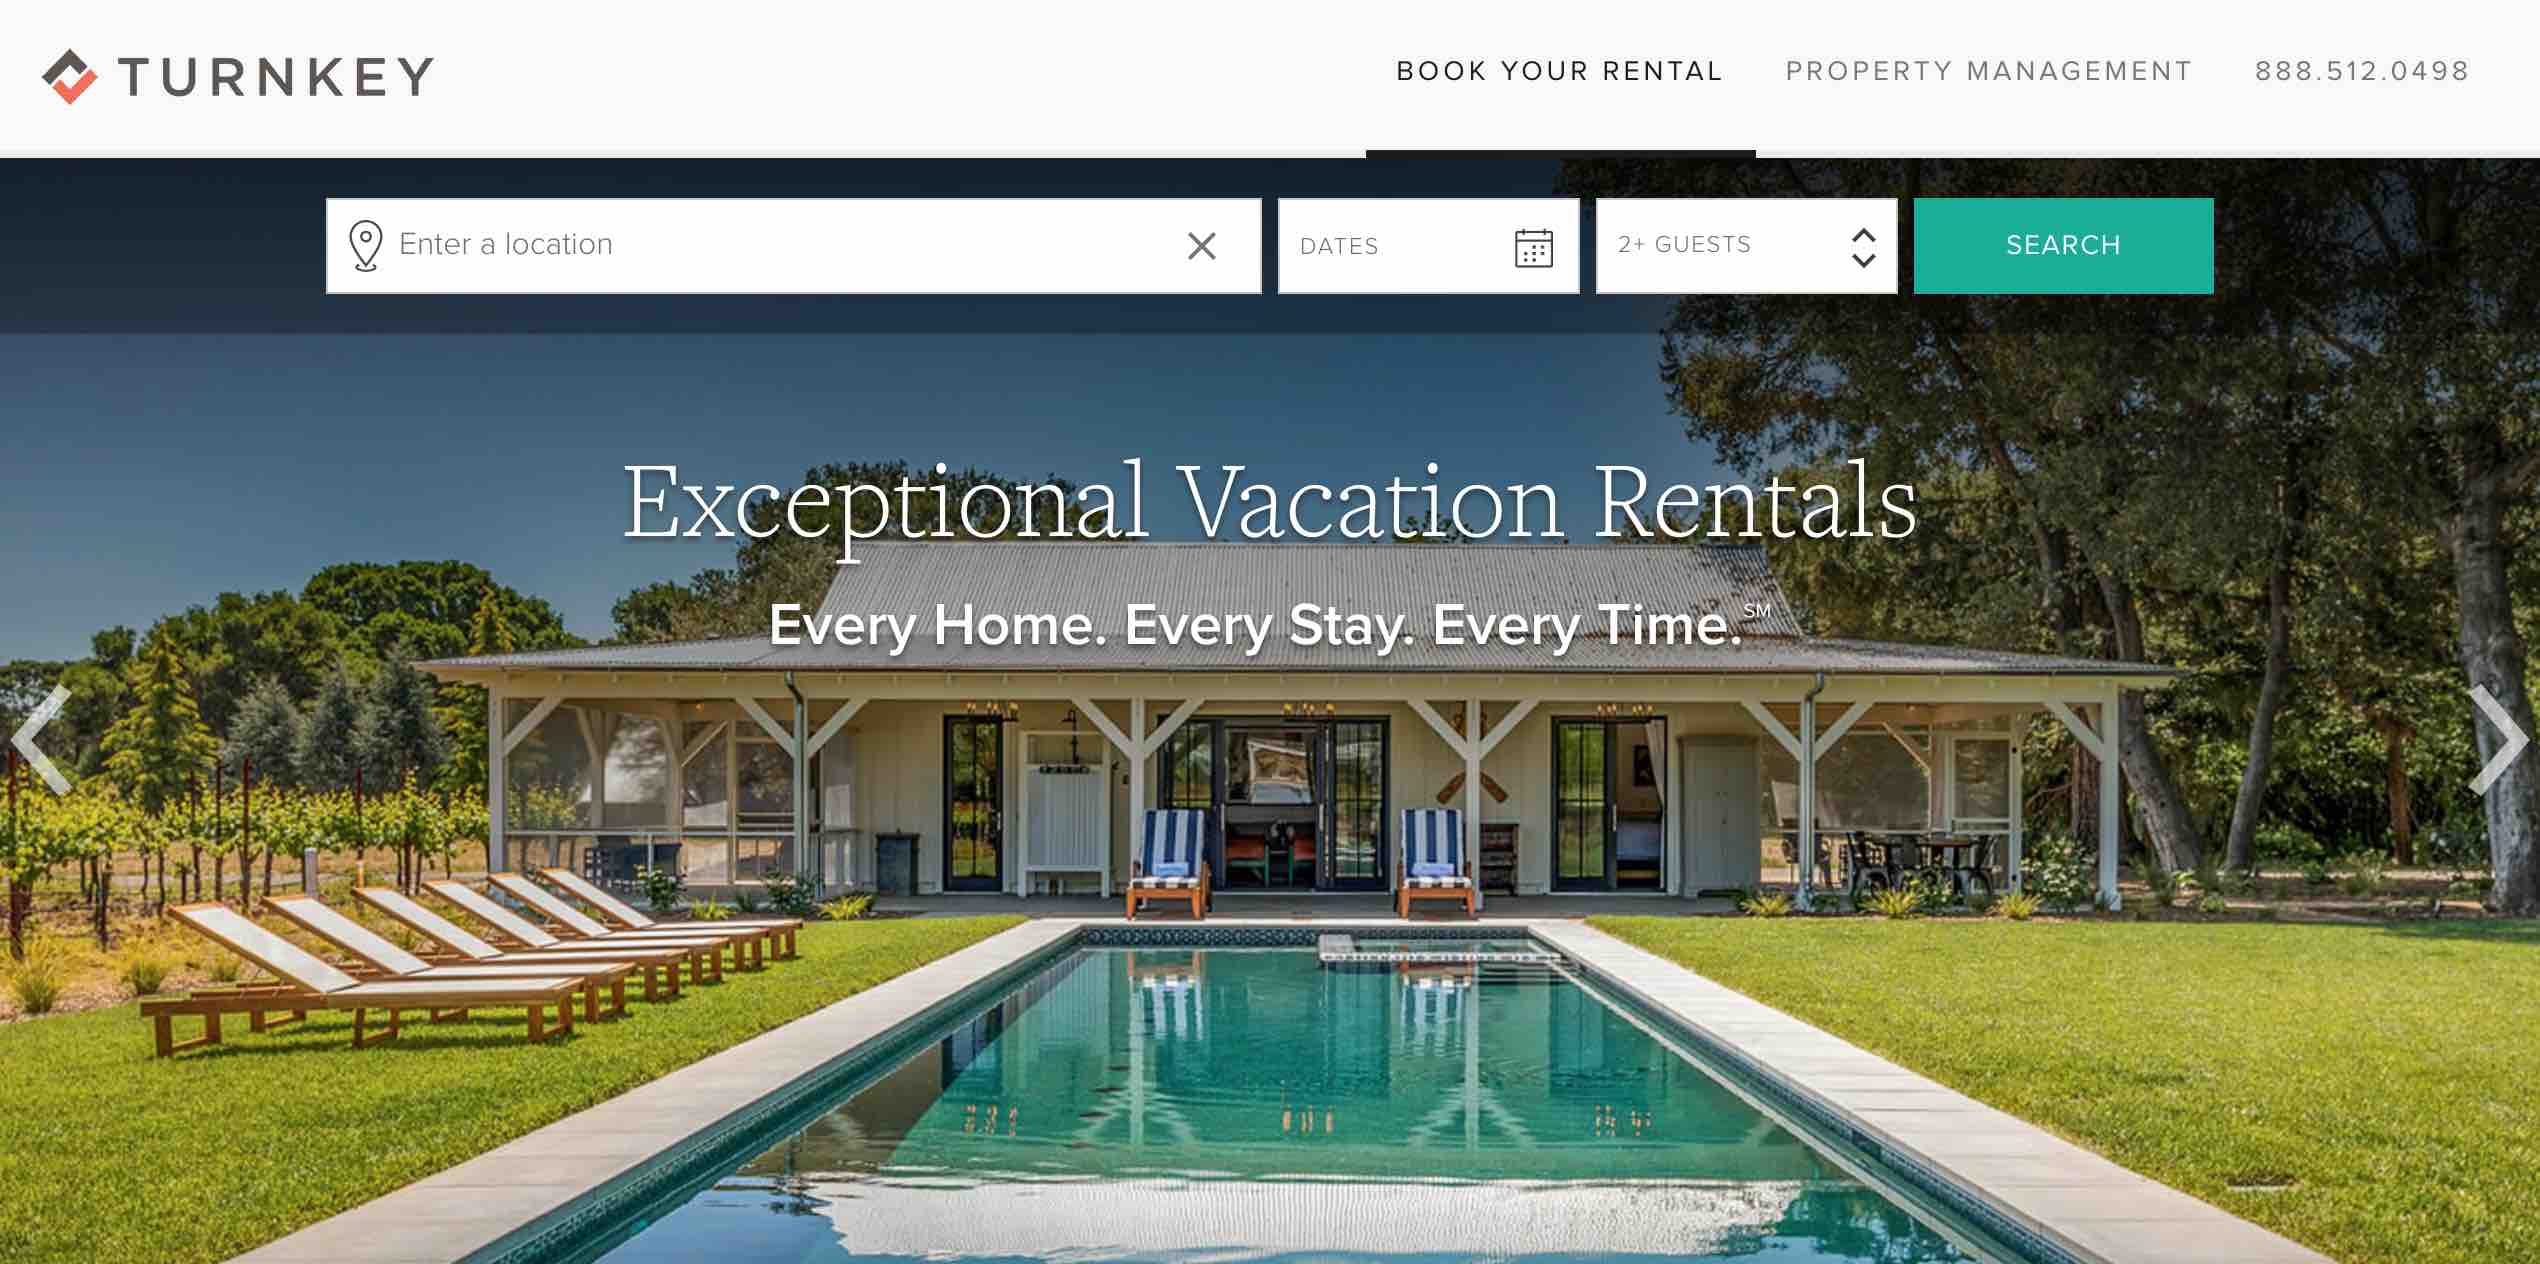 Similar Websites to Airbnb